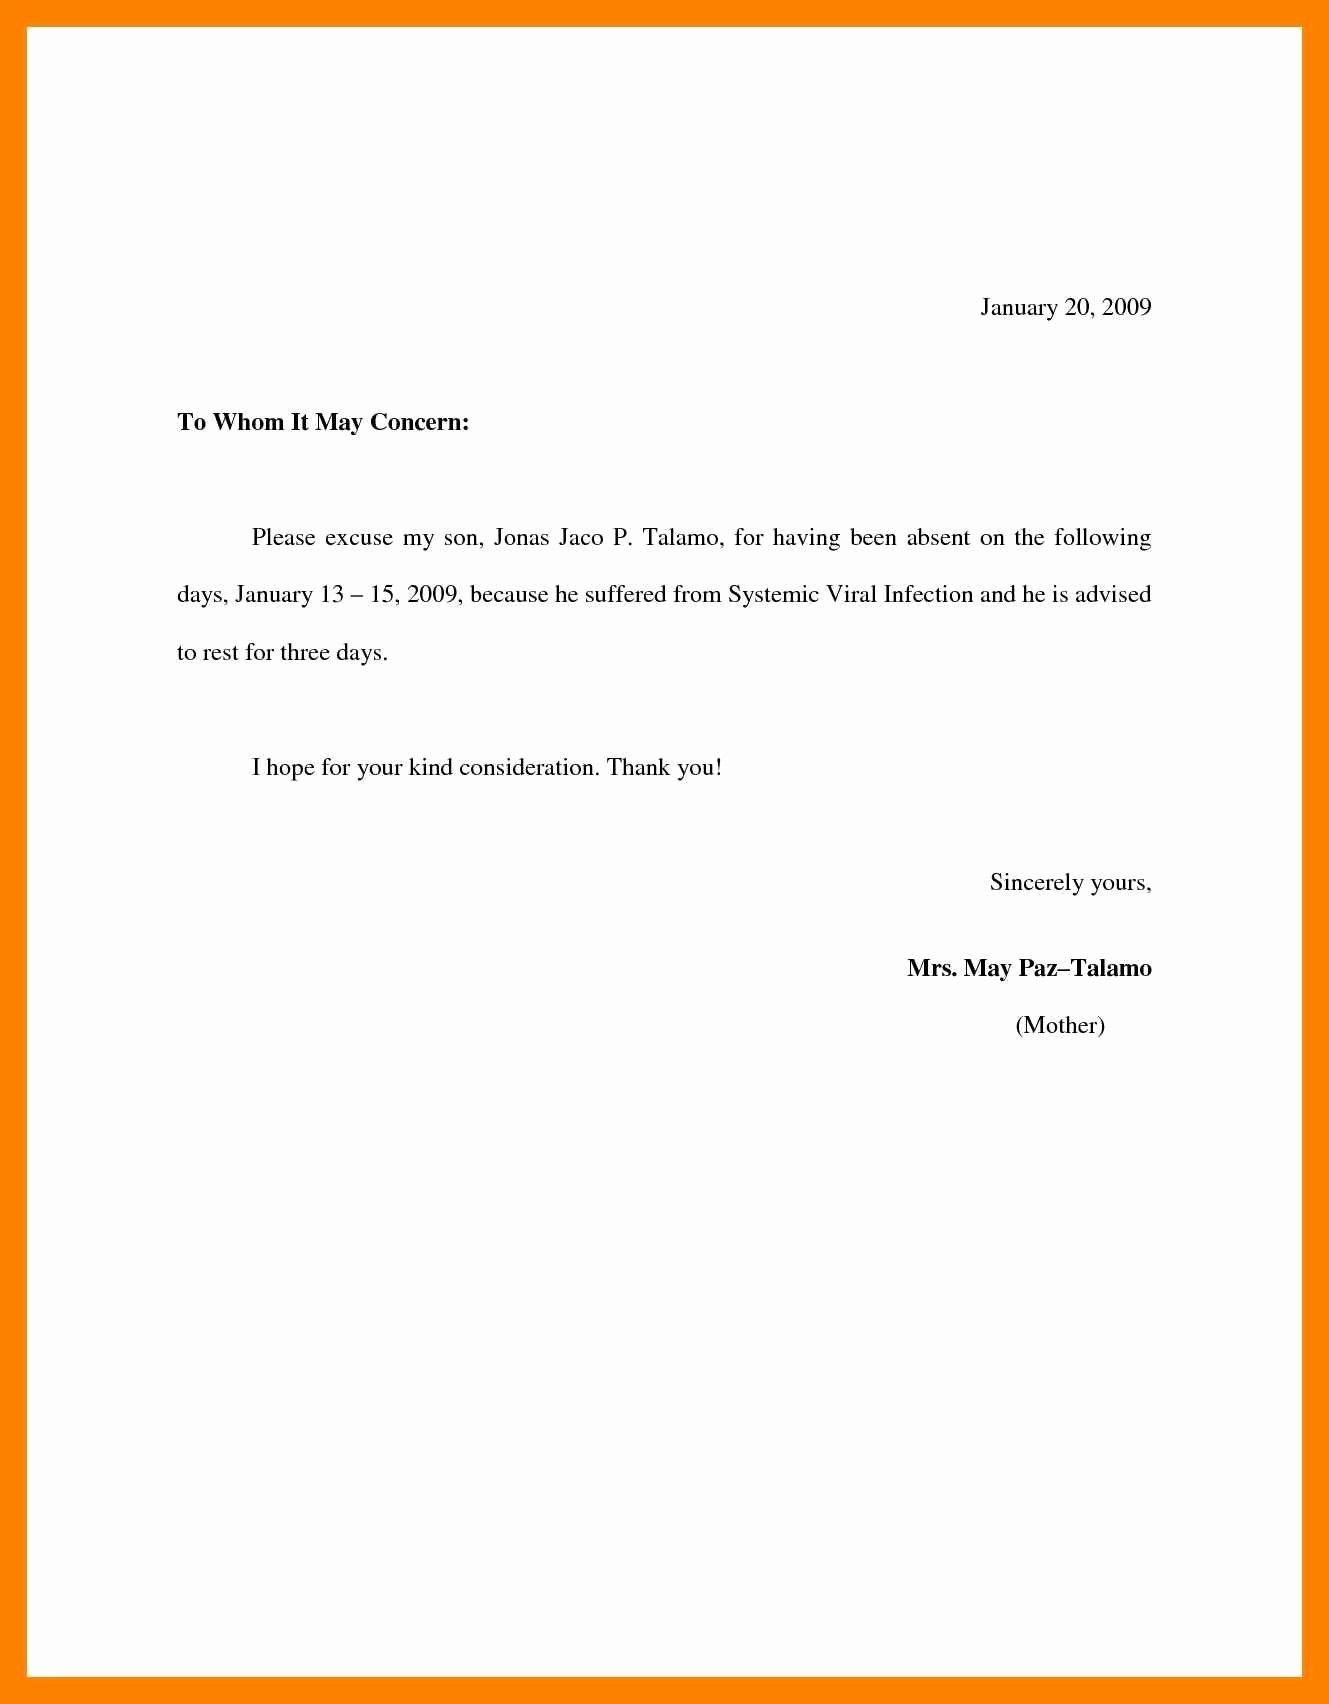 Absence Note for School Example Fresh Excuse Letter for Absence In School 1 Absent Best format